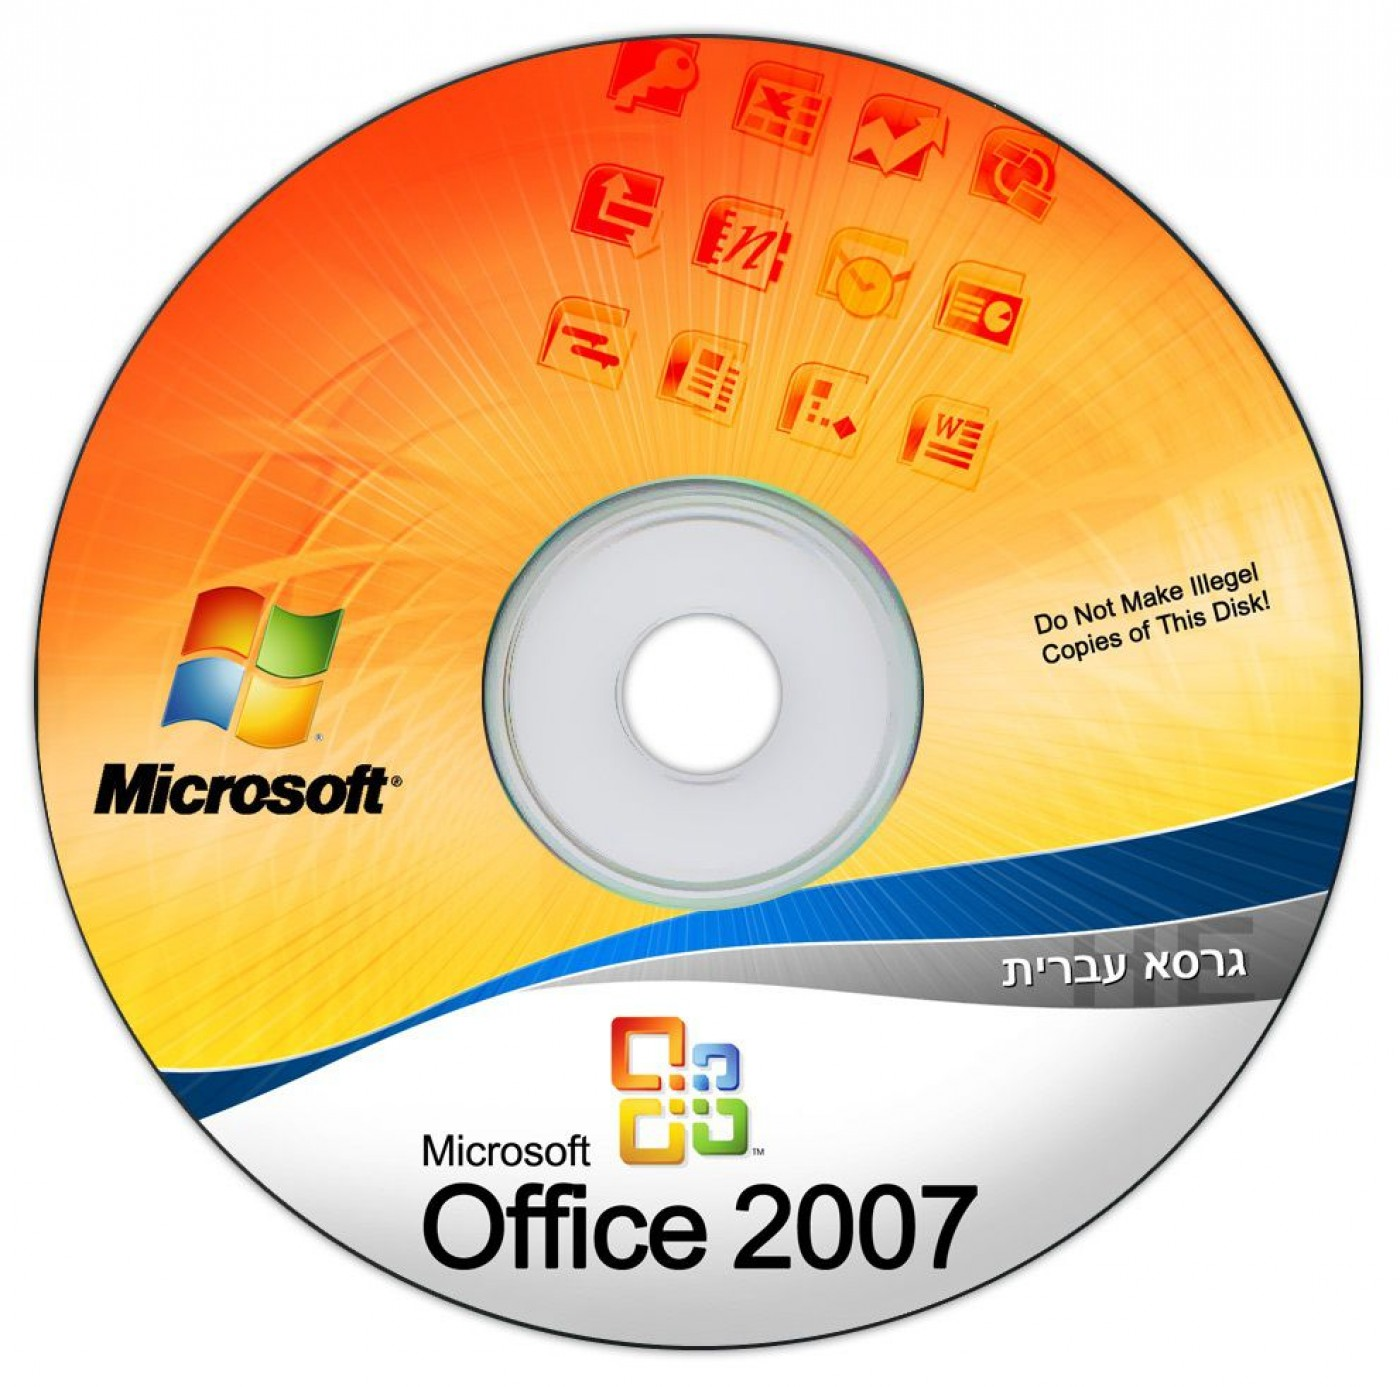 008 Excellent Cd Label Template Word 2010 Highest Quality  Microsoft1400